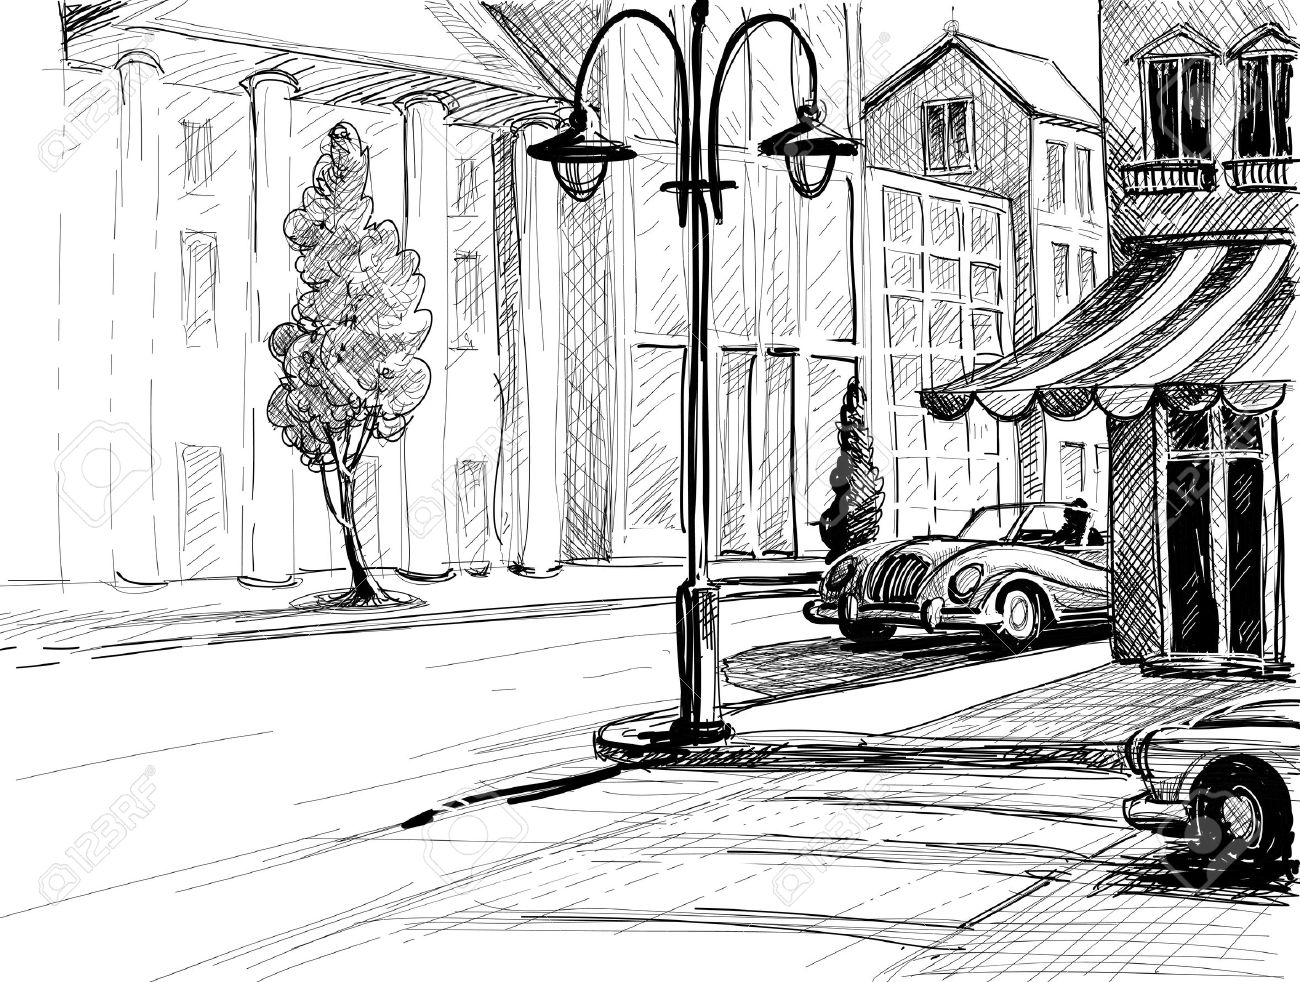 Retro city sketch street buildings and old cars vector illustration